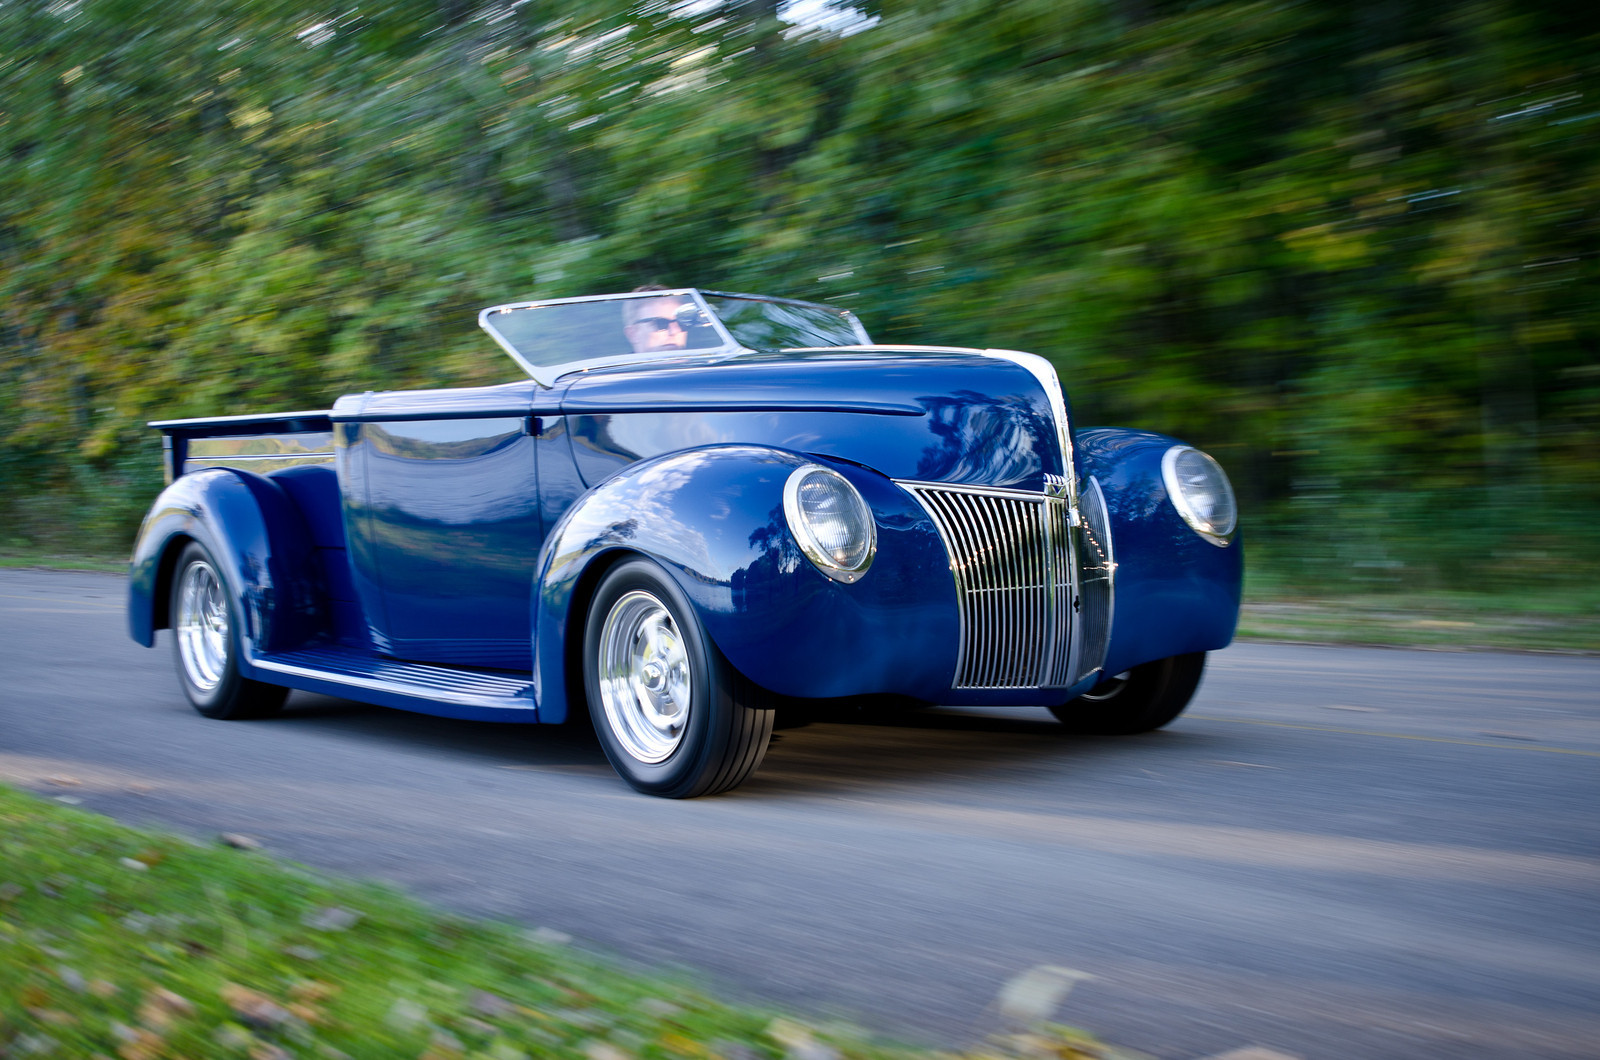 a blue roadster car driving through a forested area.